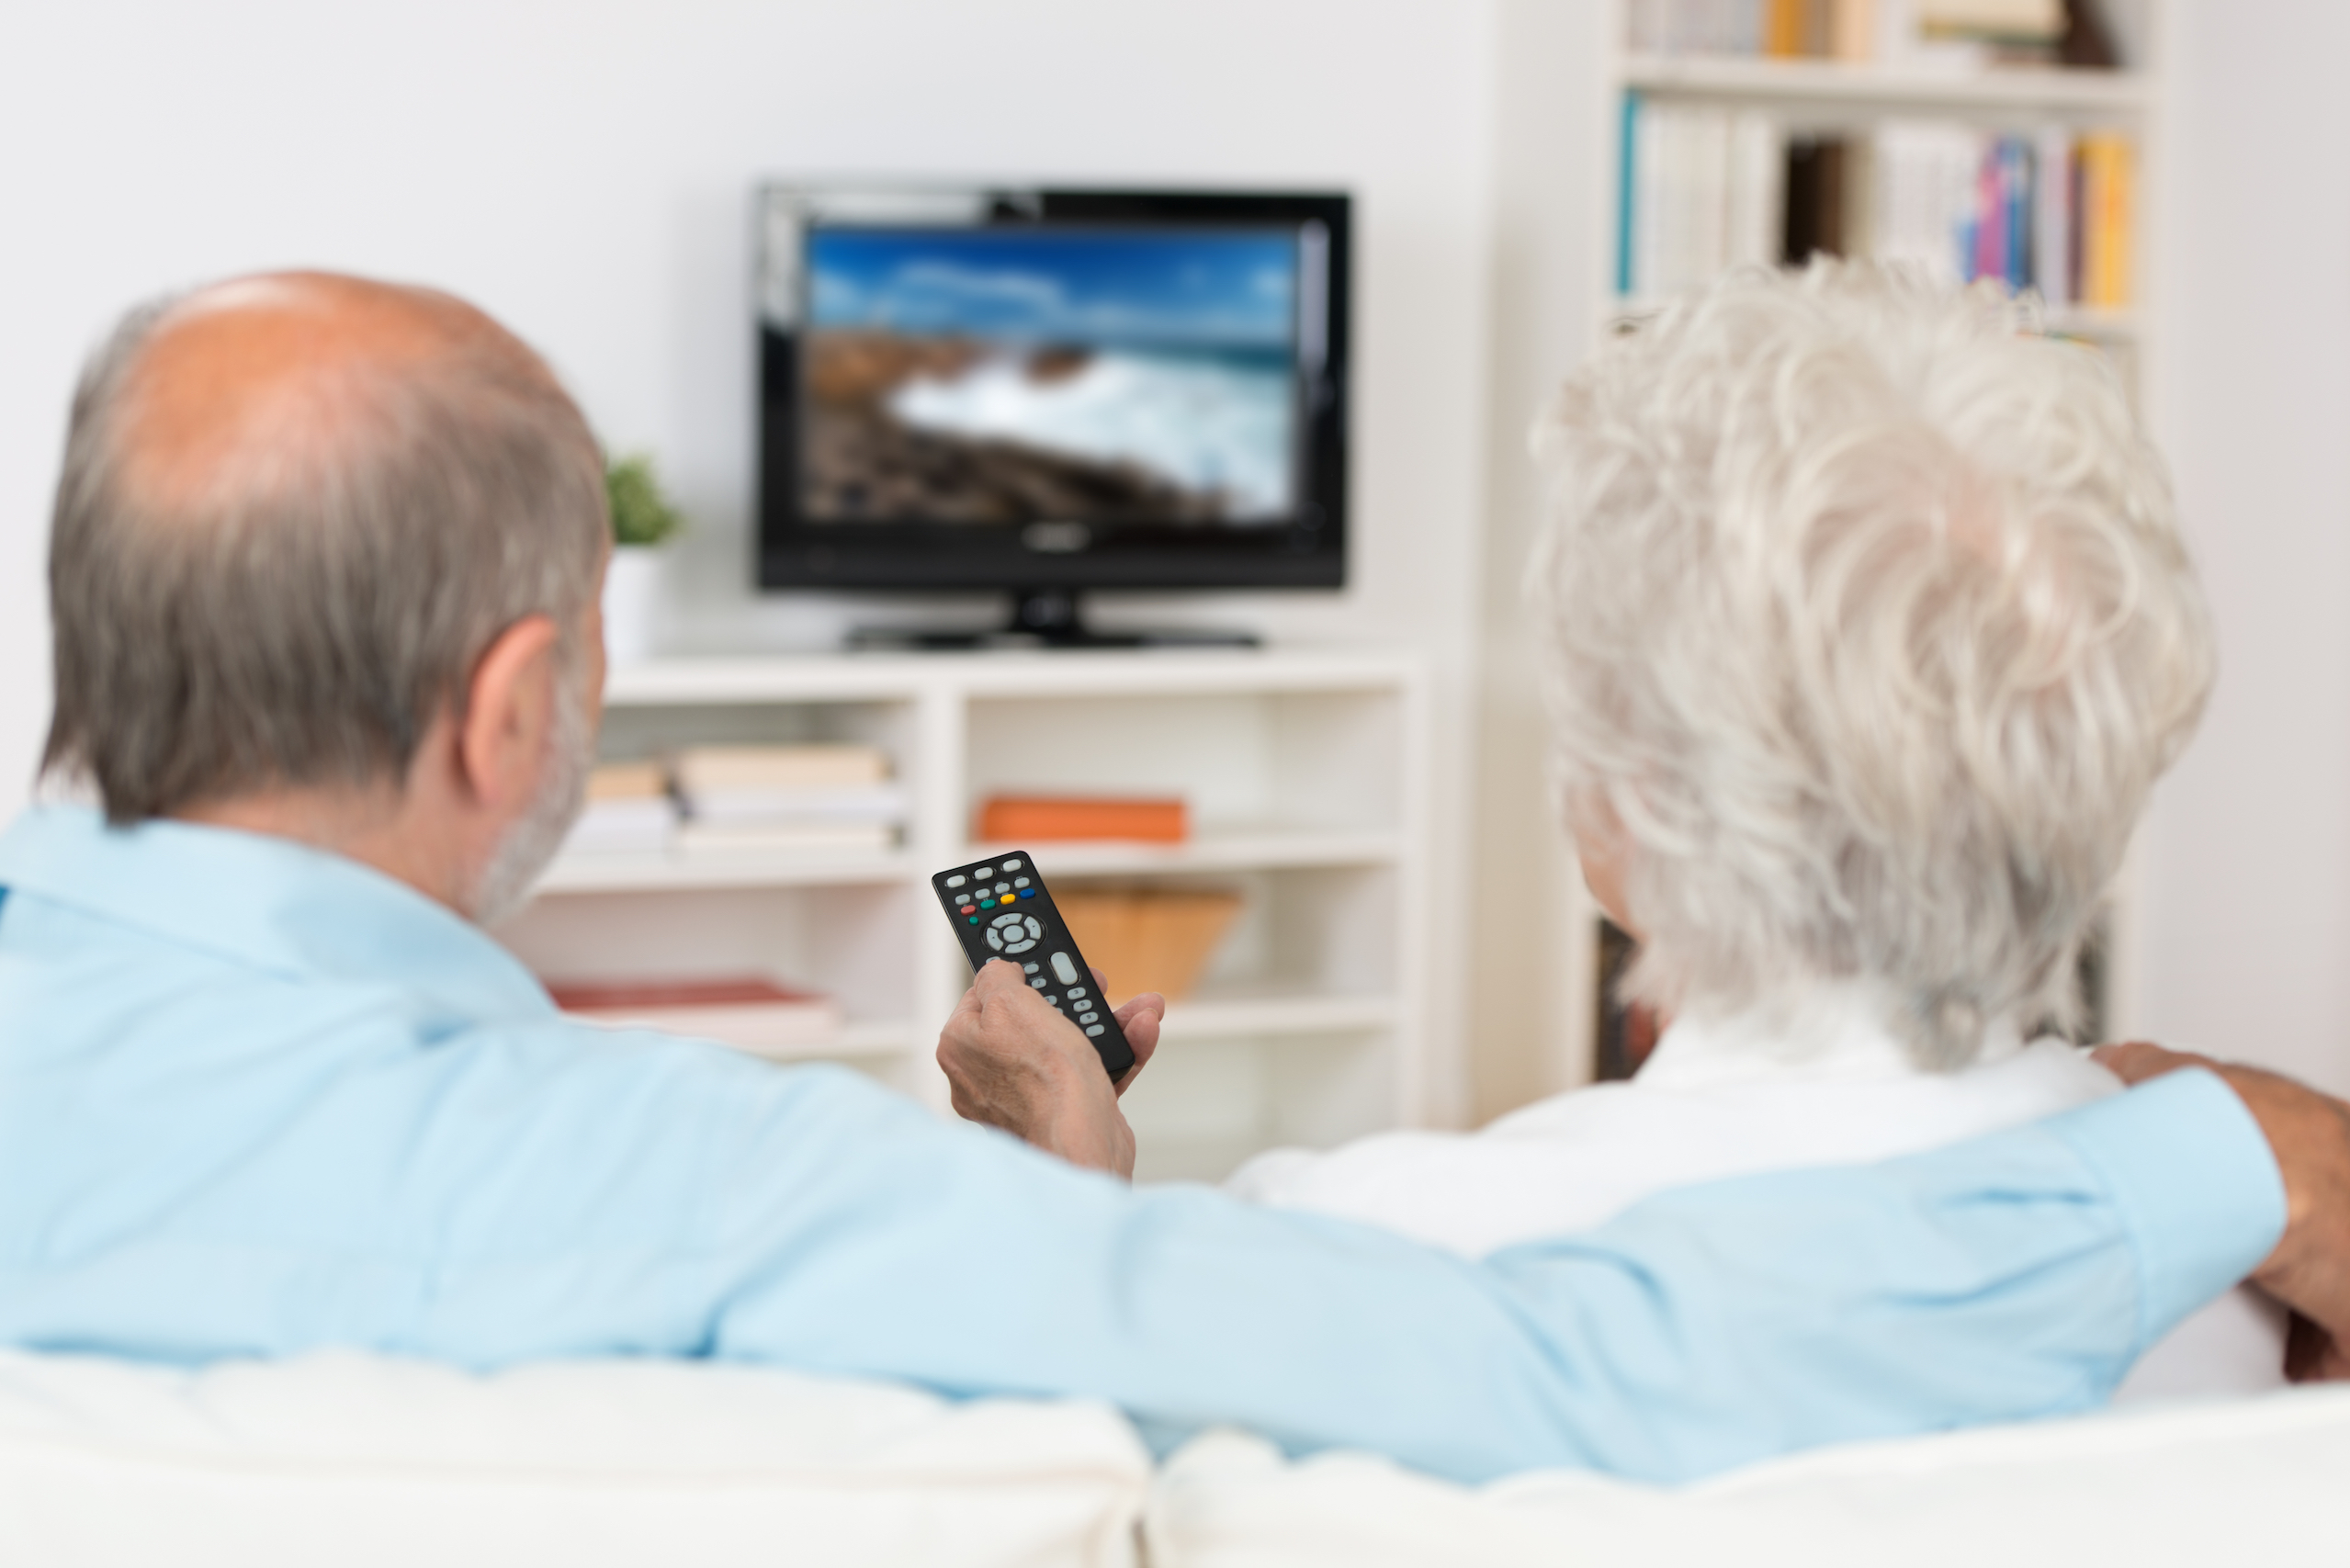 Anew study has found that older people who watch more than five hours of TV per day may risk of losing their ability to walk years later.